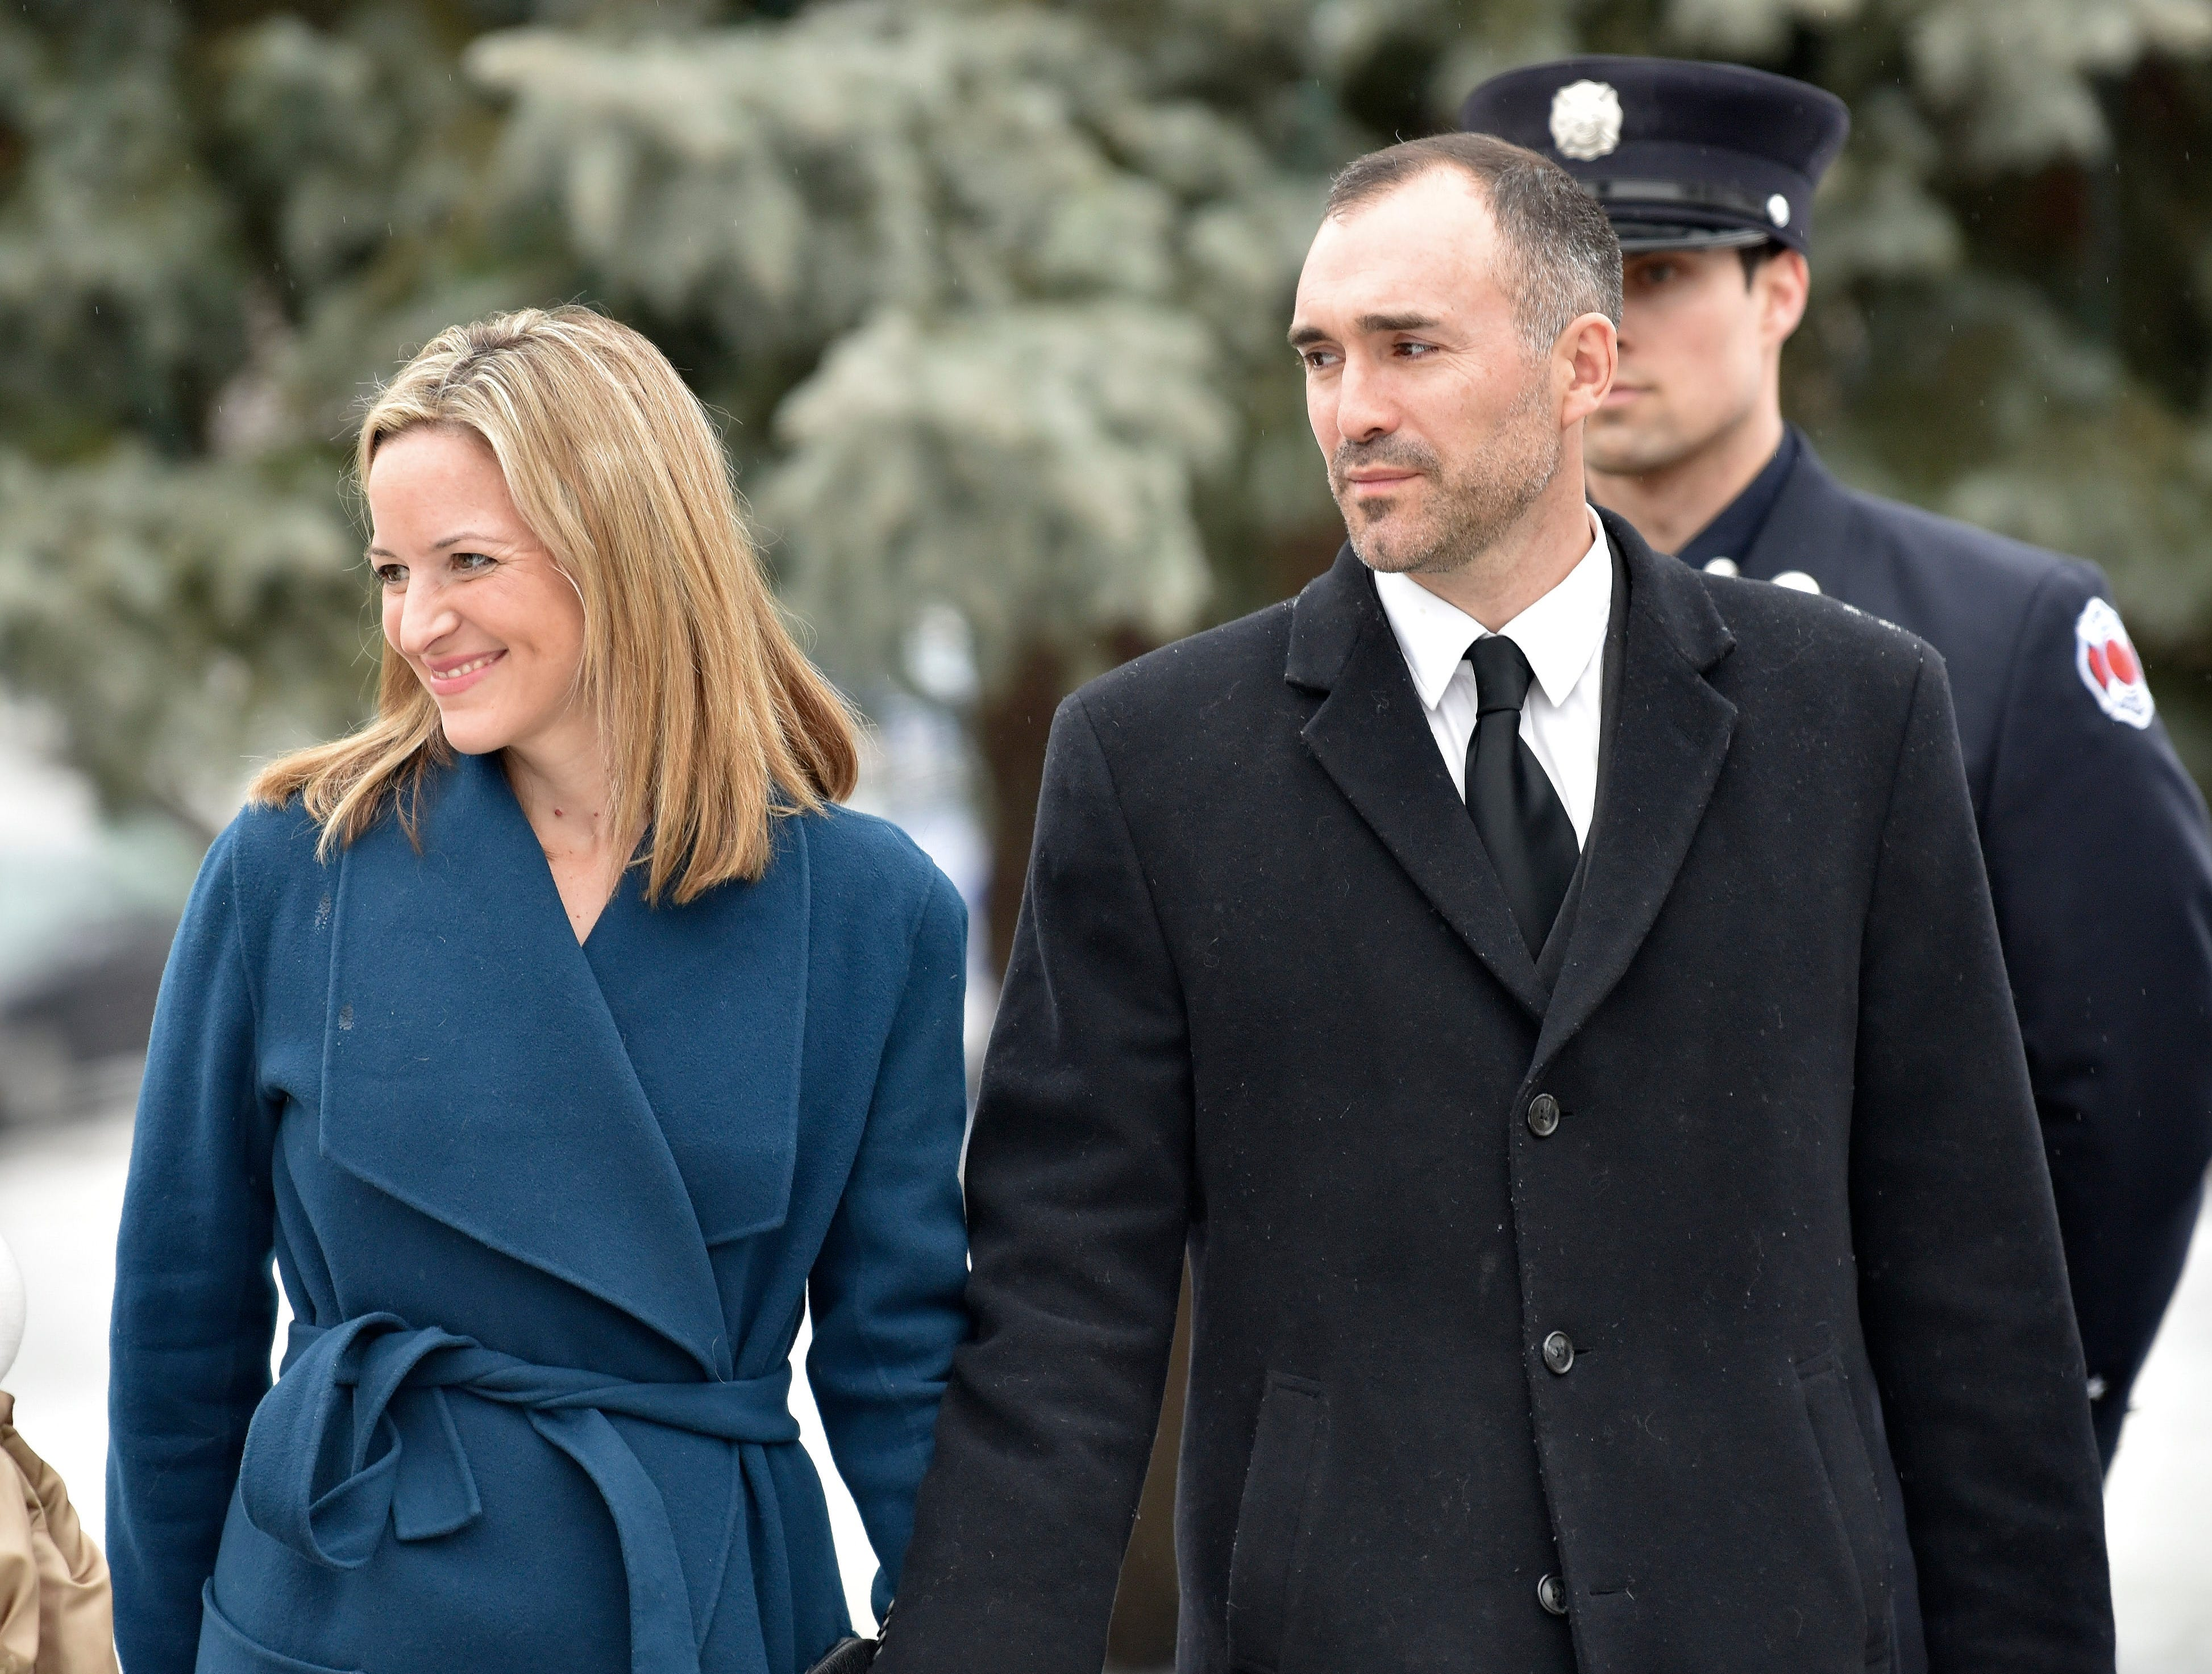 Michigan Secretary of State Jocelyn Benson, left, leaves the funeral mass.